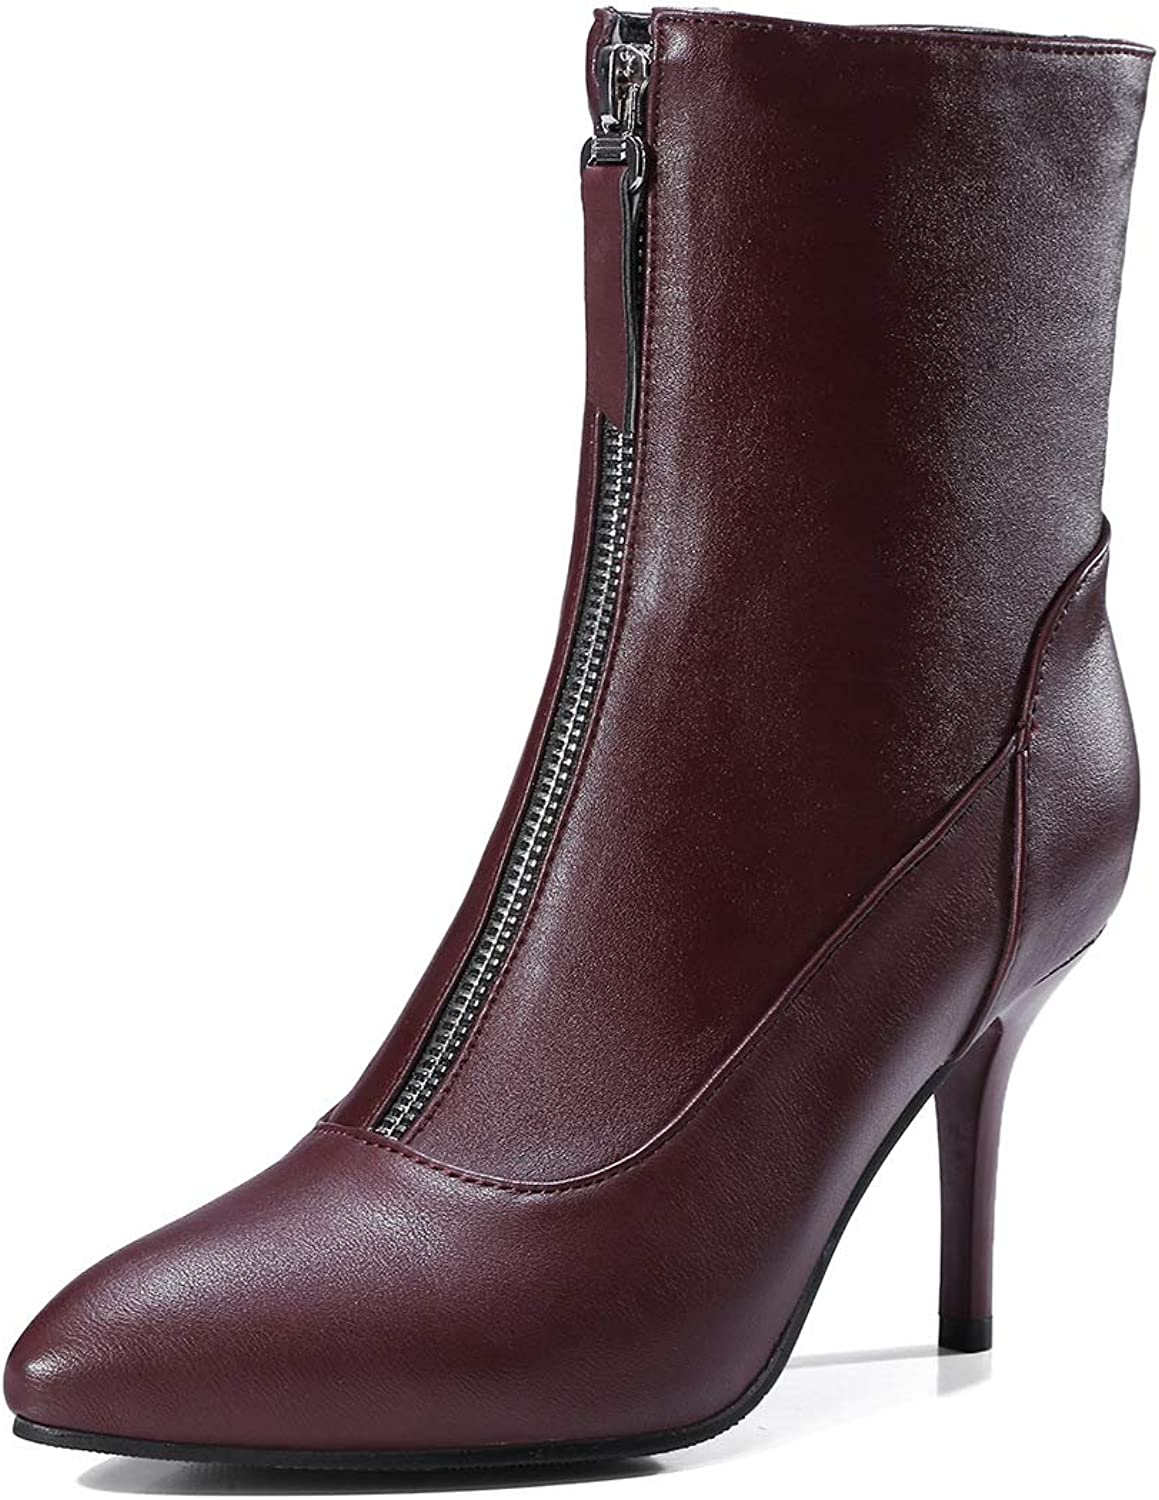 Women's Booties, New Black Stiletto Heel Ankle Boots Ladies Mid Heel High Heel Fashion Boots (color   B, Size   37)